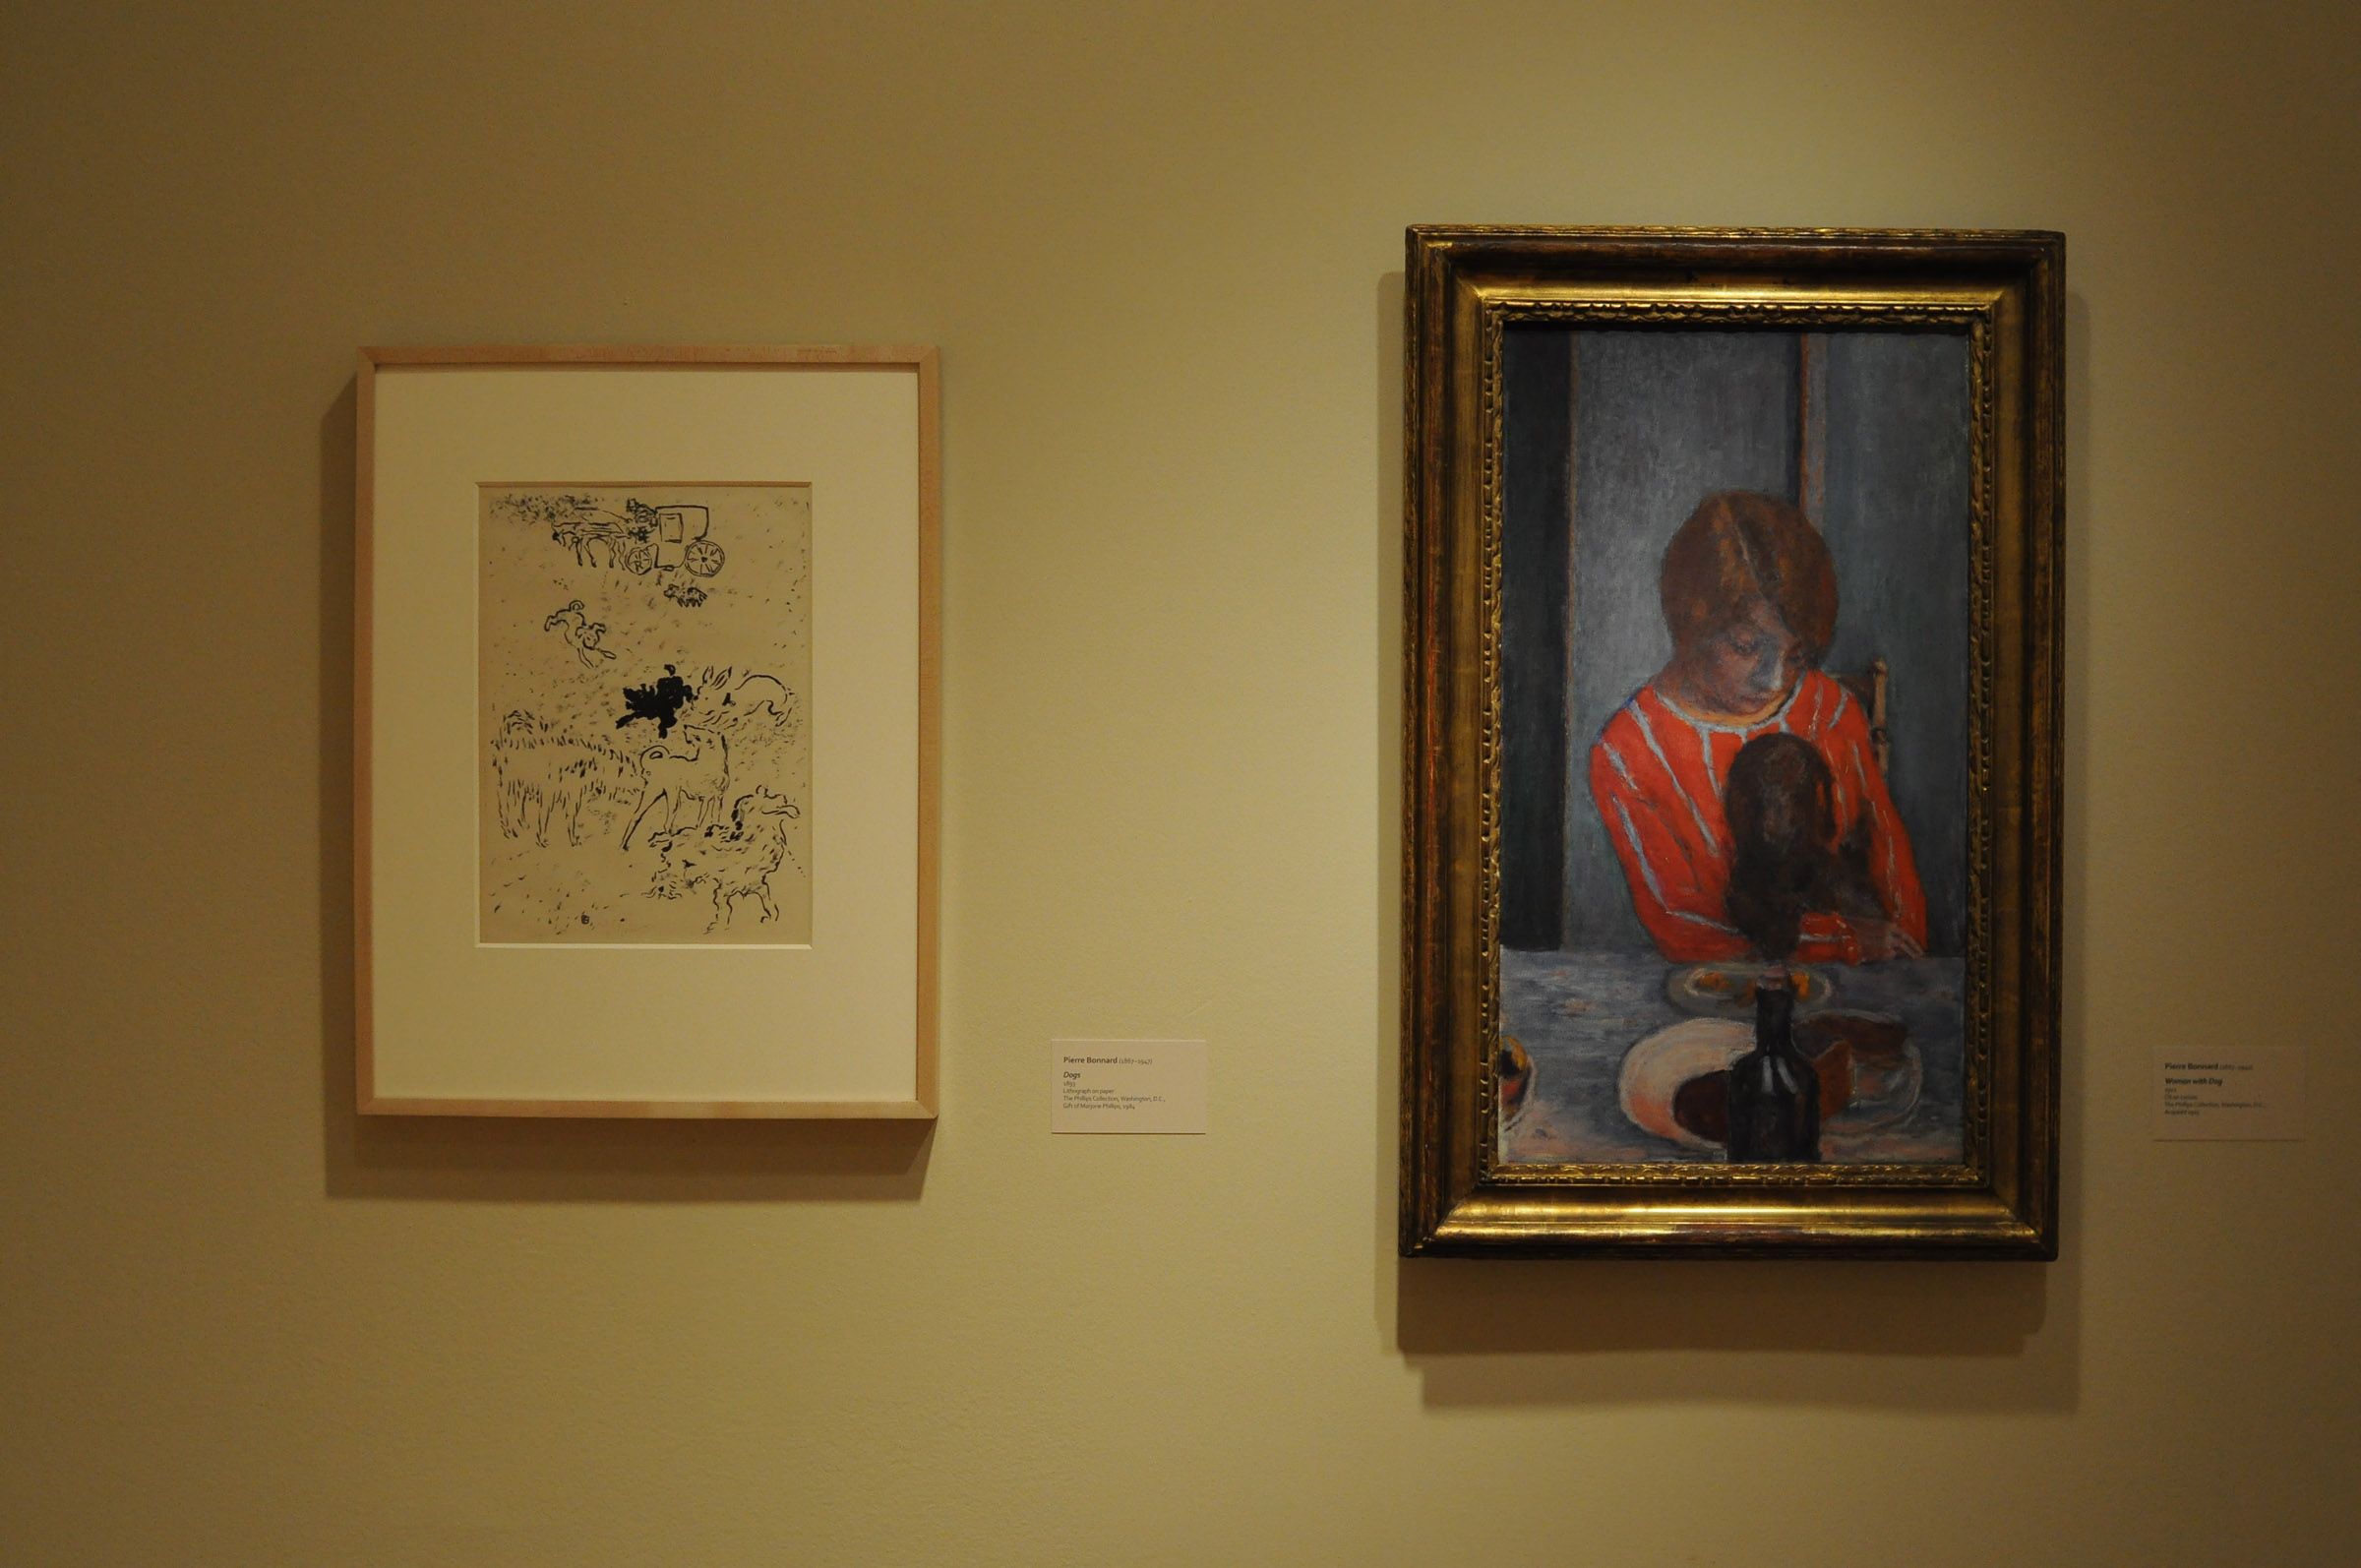 Installation view of two works by Pierre Bonnard in Snapshot exhibition. At left is Dogs, 1893. Lithograph on paper; 15 x 11 in. The Phillips Collection, Washington, D.C. At right is Woman with Dog, 1922, Oil on canvas; 27 1/4 x 15 3/8 in. The Phillips Collection, Washington, D.C. Photo: Joshua Navarro.